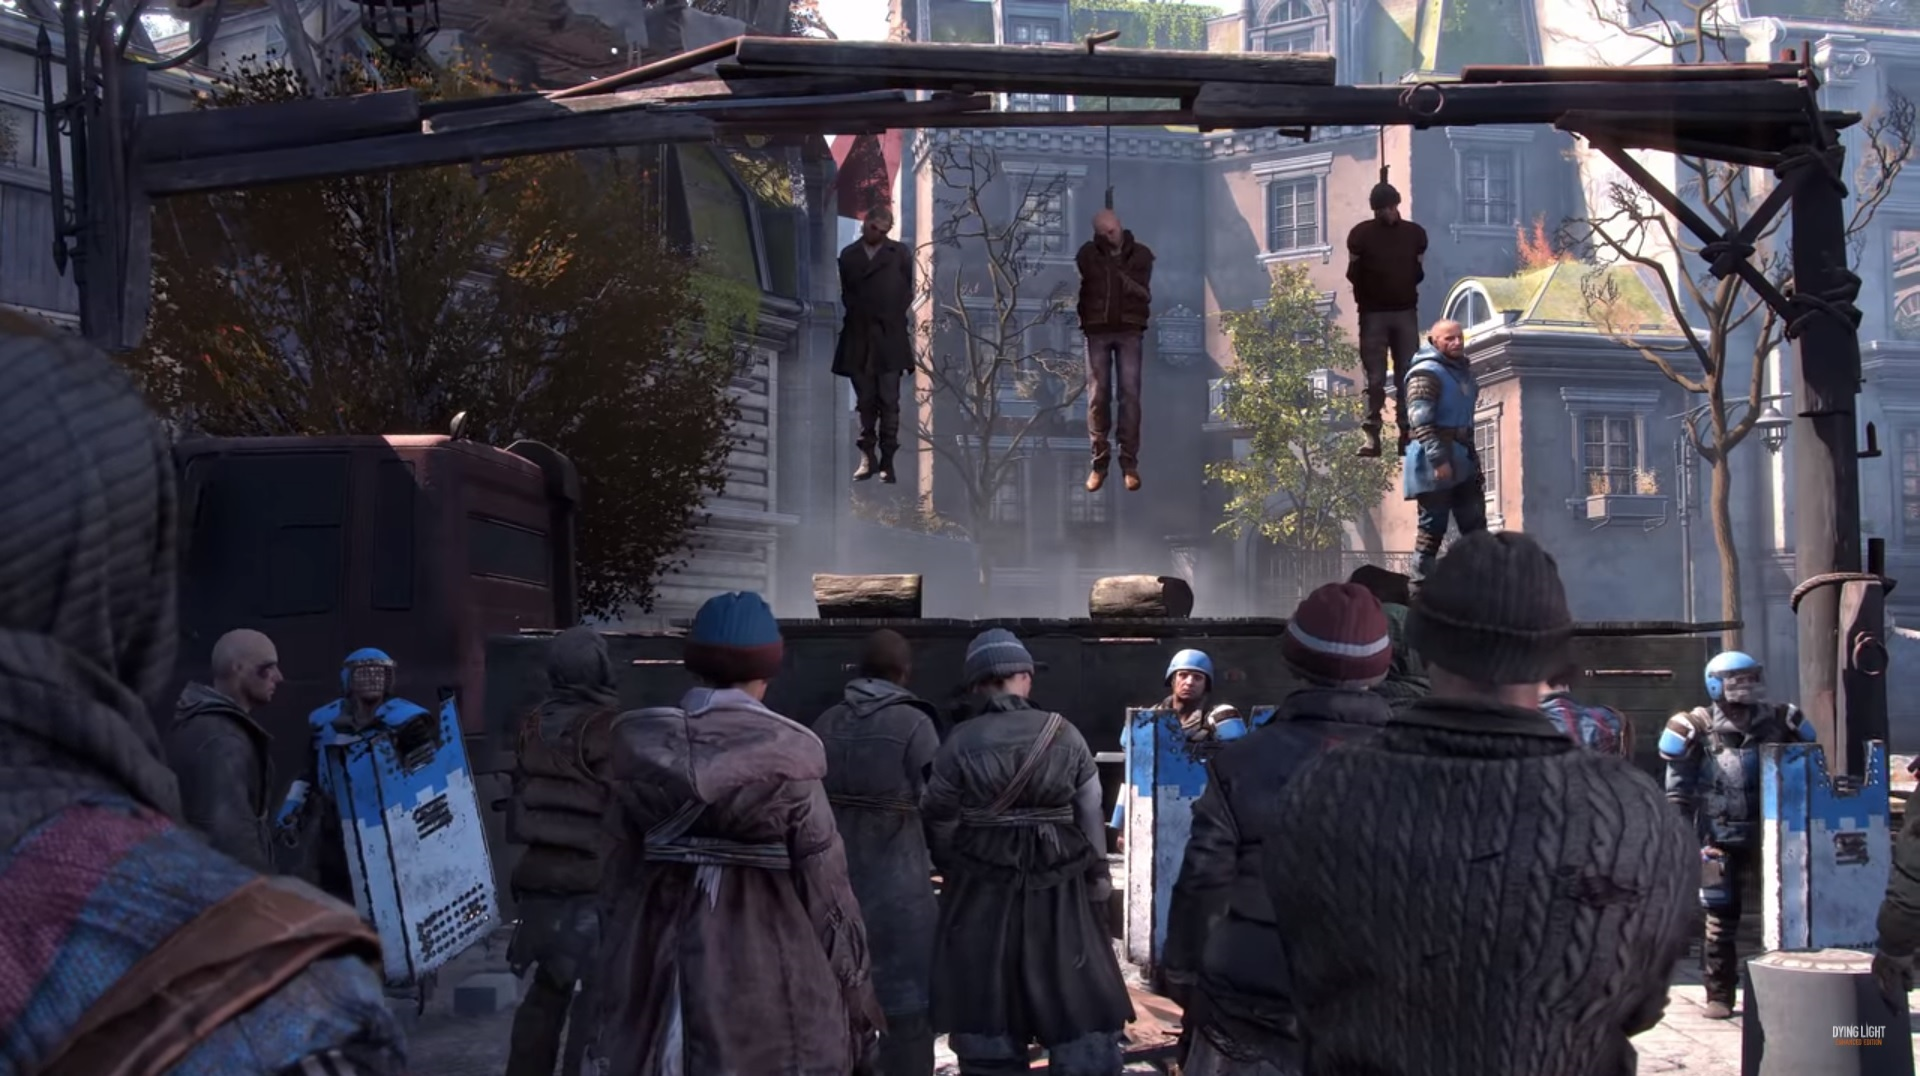 Dying Light 2 - Characters looking up at a gallows where three people and hanging.